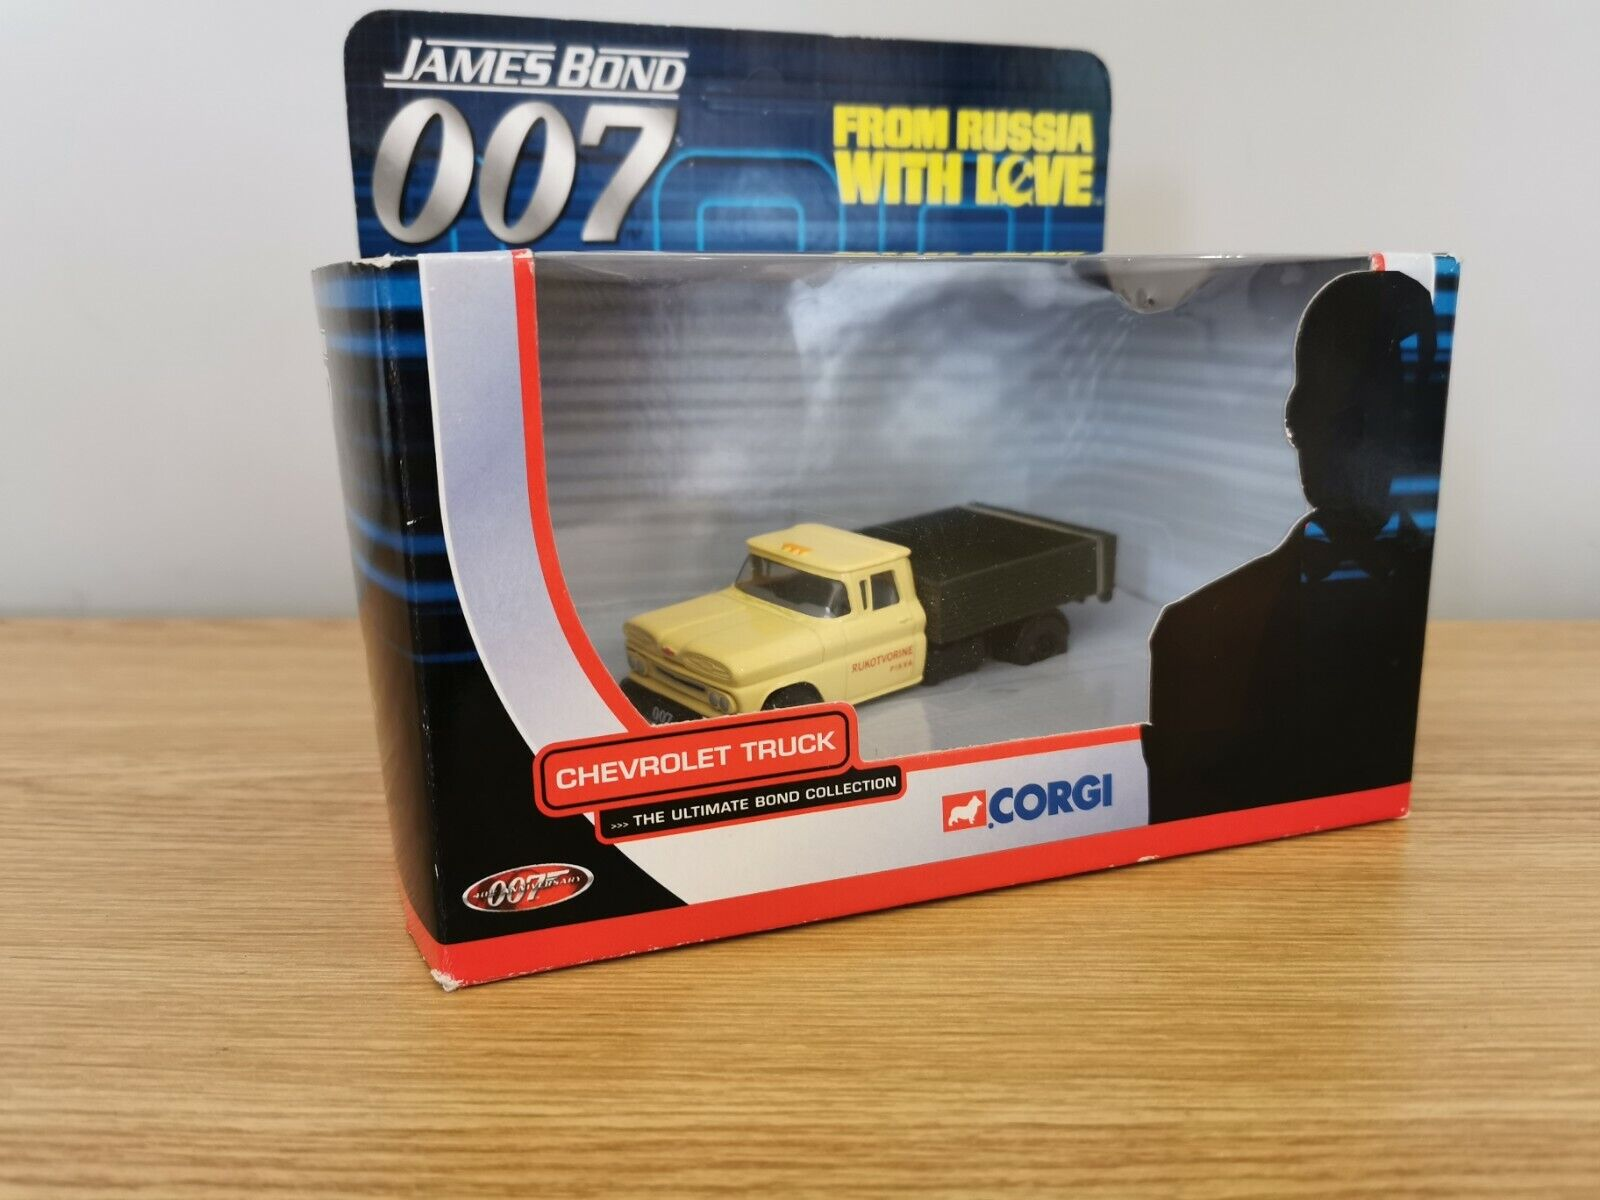 James Bond 007 FROM RUSSIA WITH LOVE Corgi Boxed Chevrolet Truck